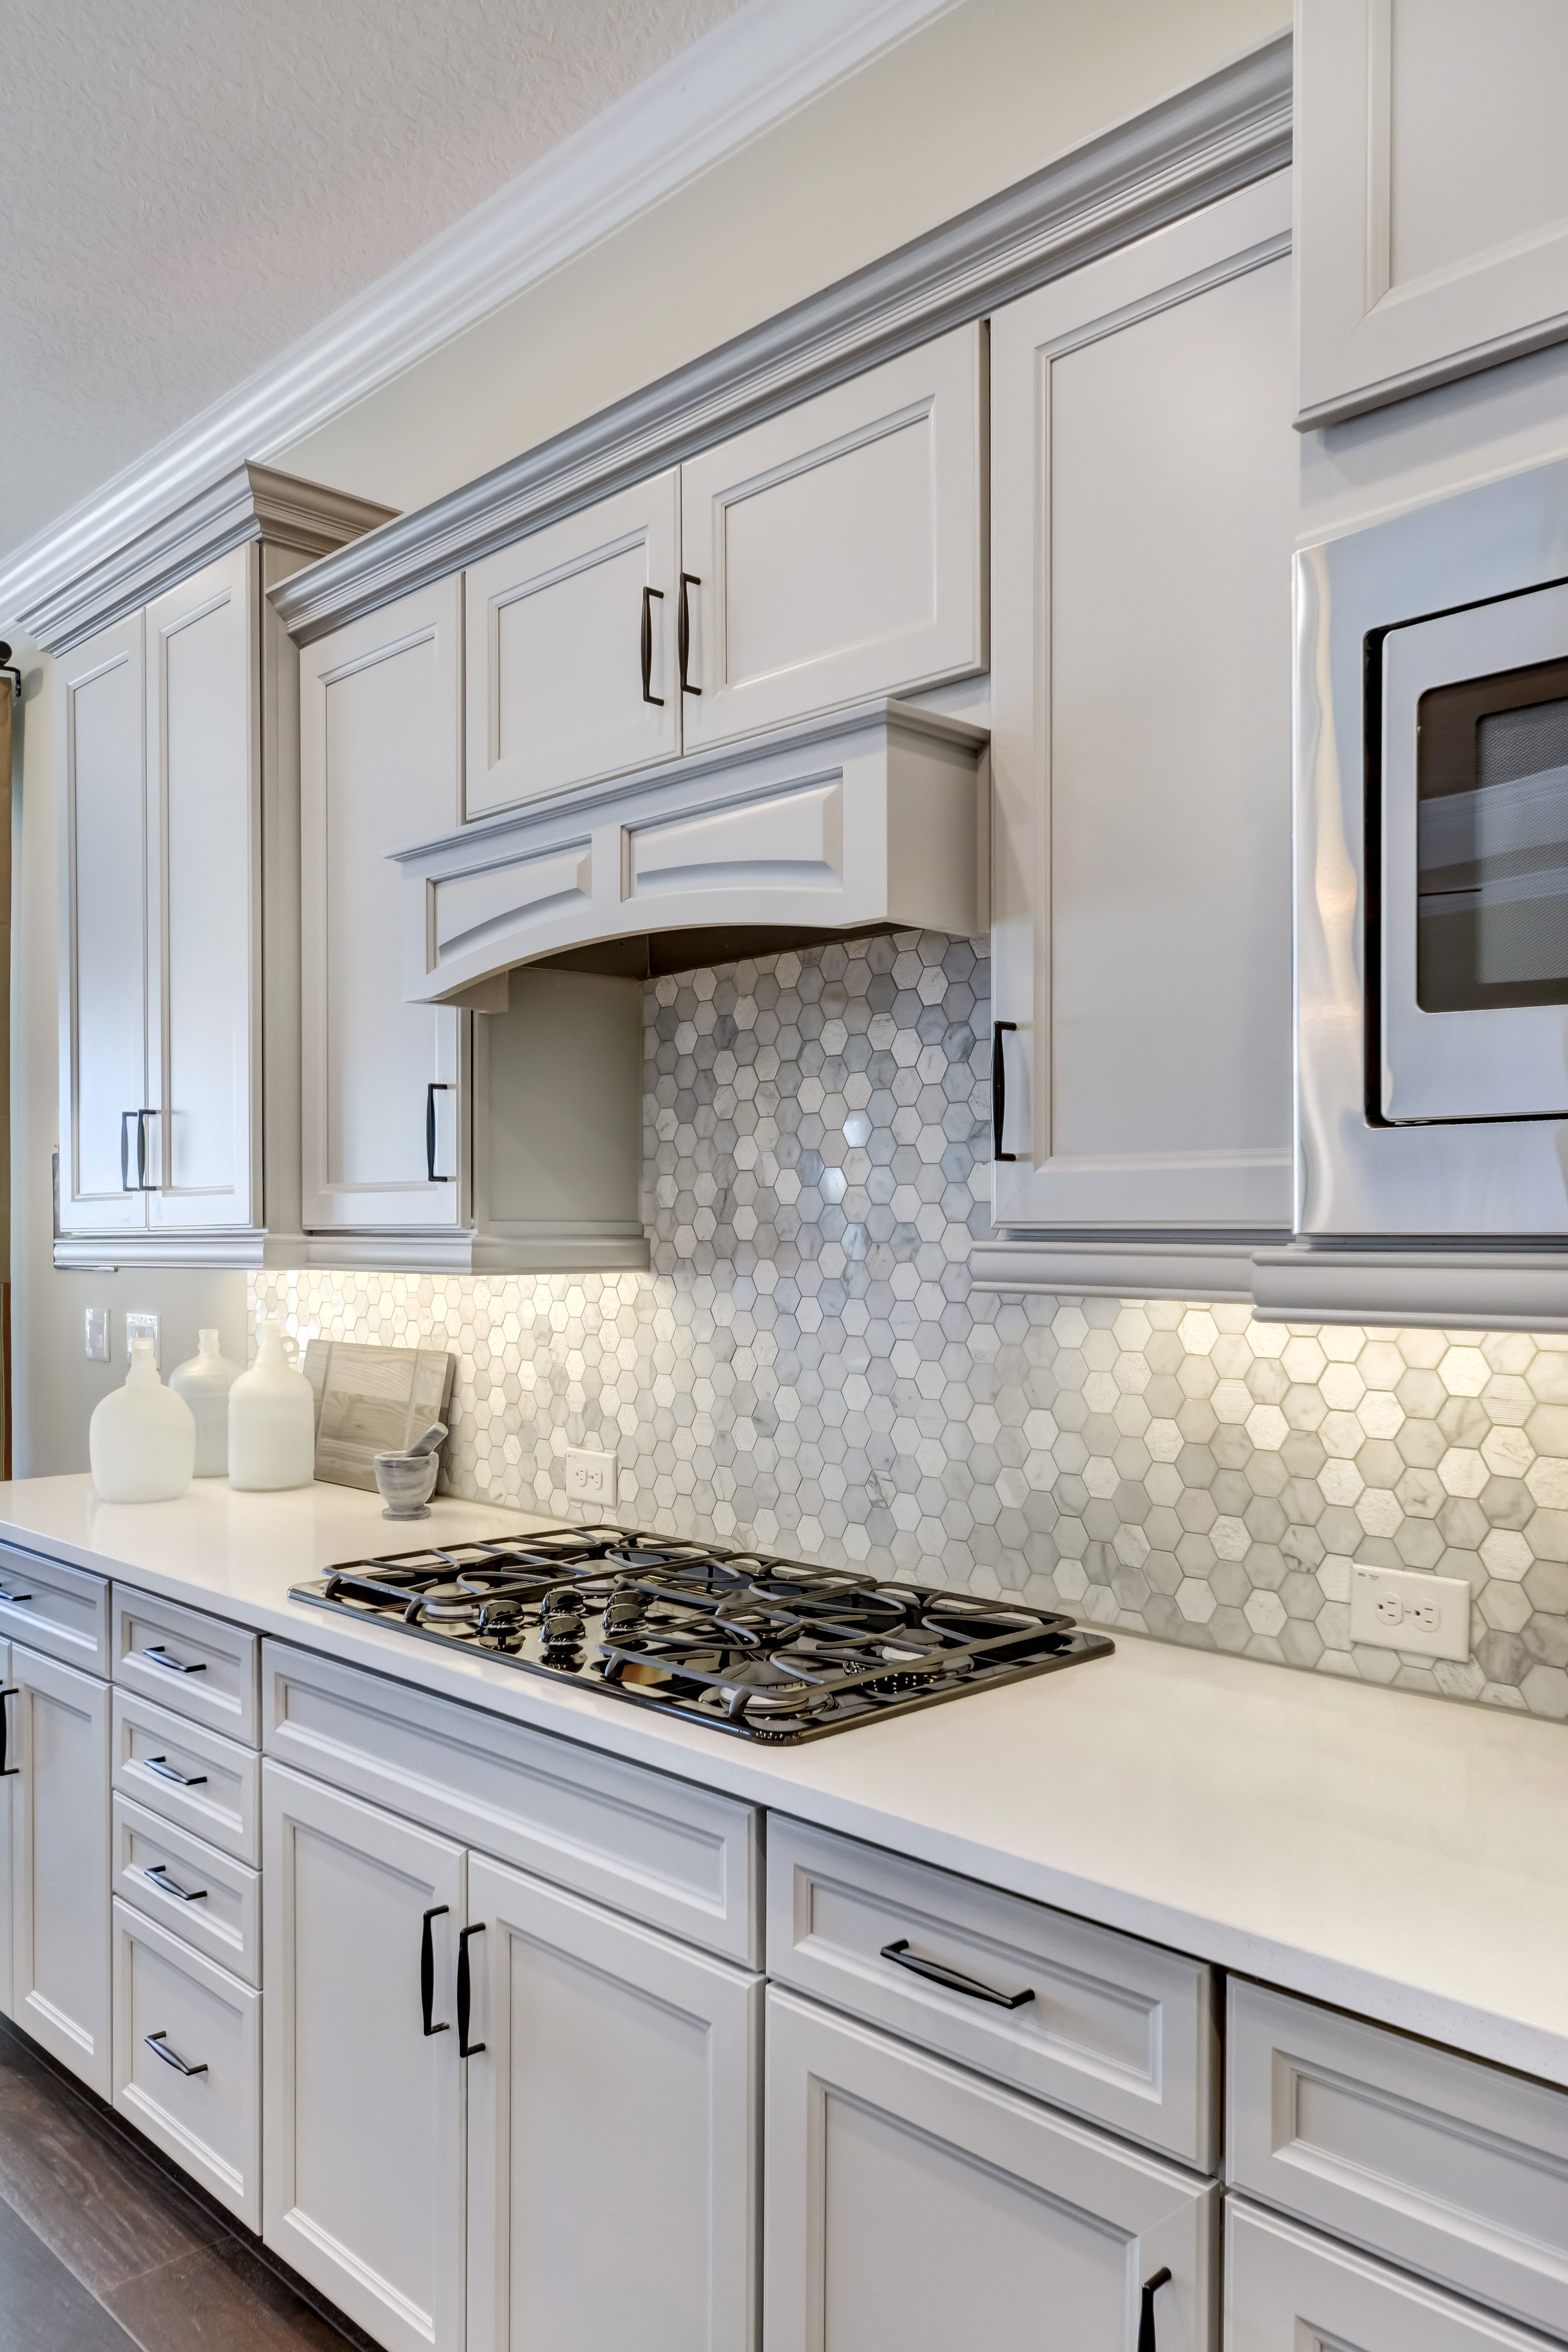 Kitchen featured in the Saint Thomas By K. Hovnanian's® Four Seasons in Orlando, FL